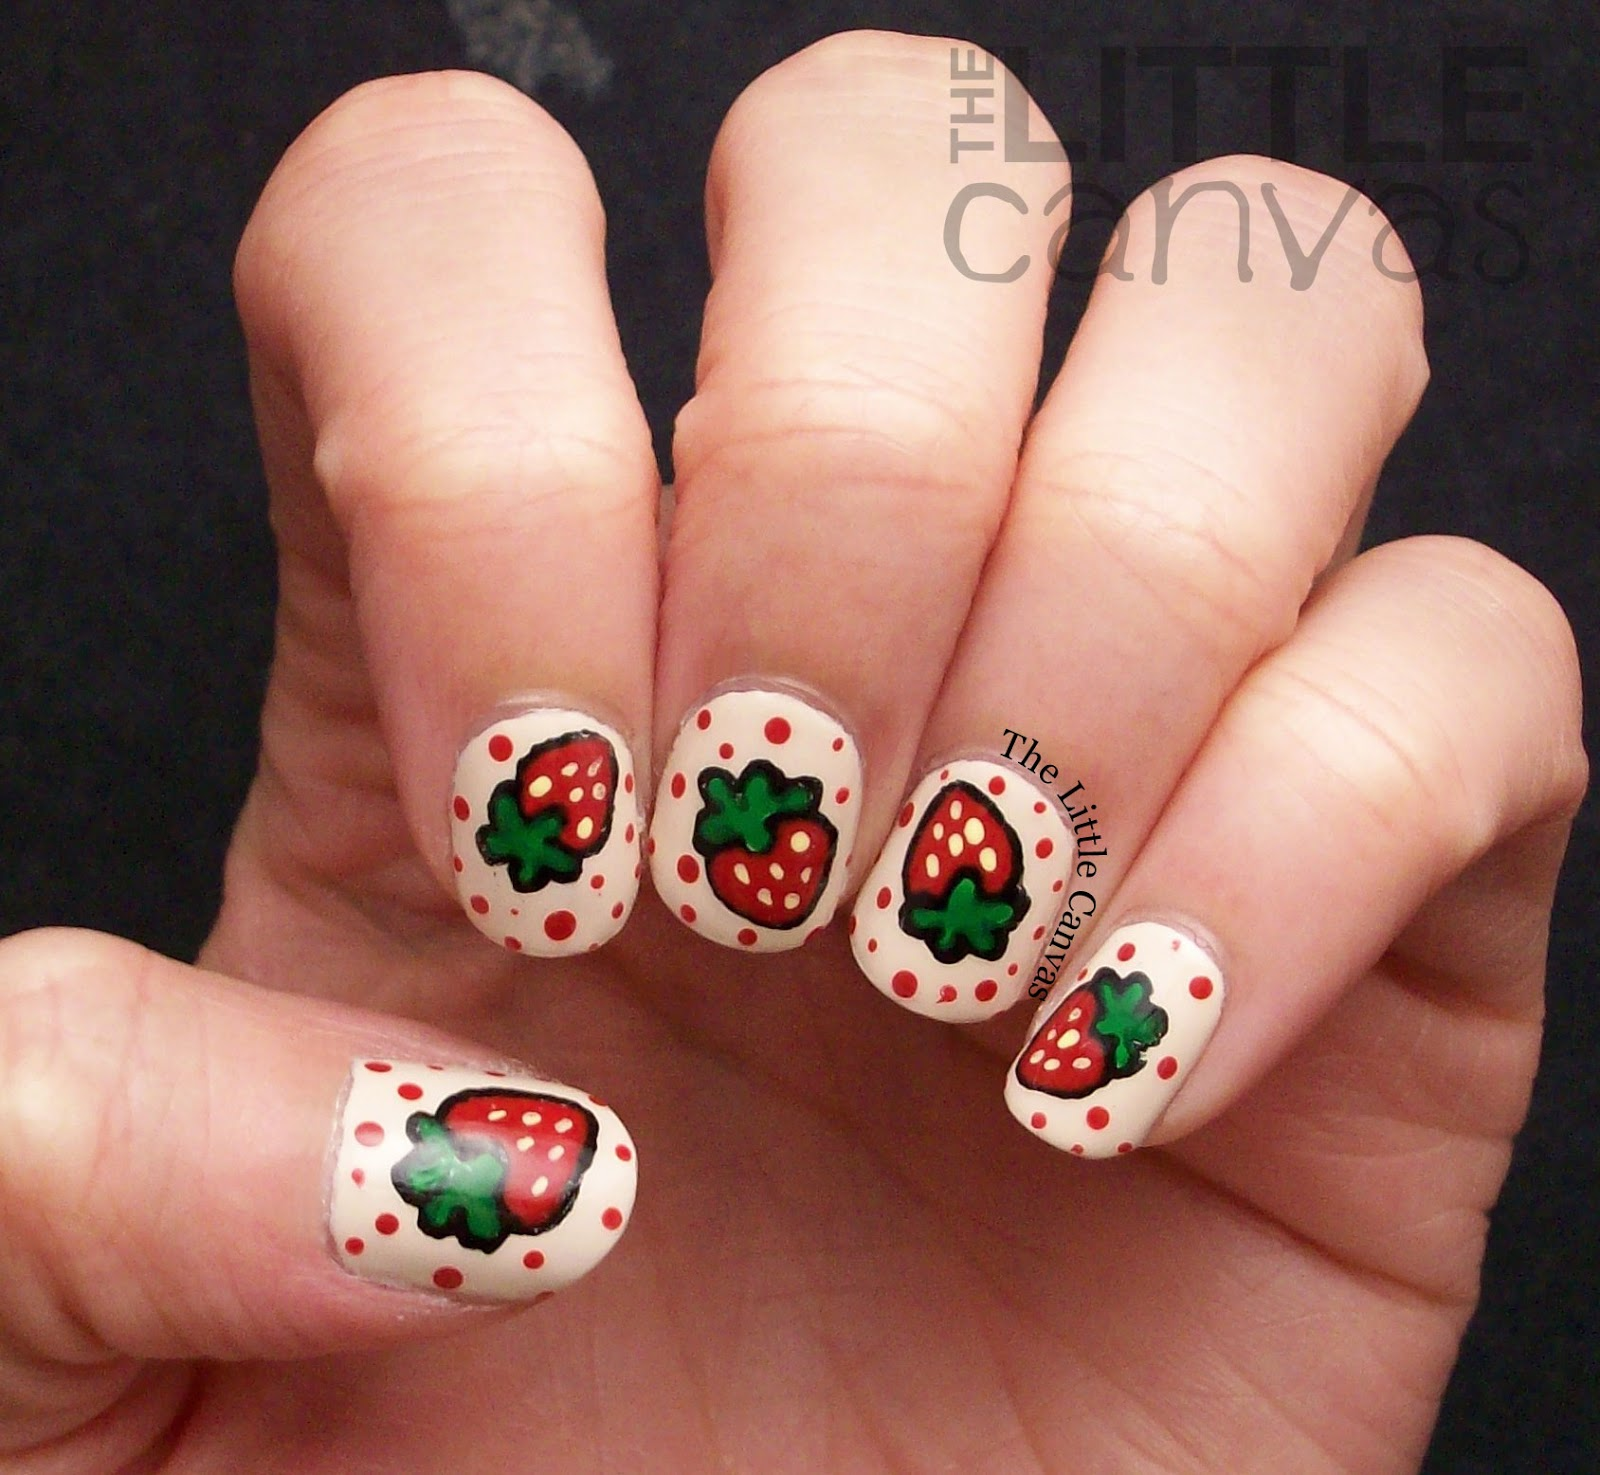 strawberry nail art inspired by simplyrins